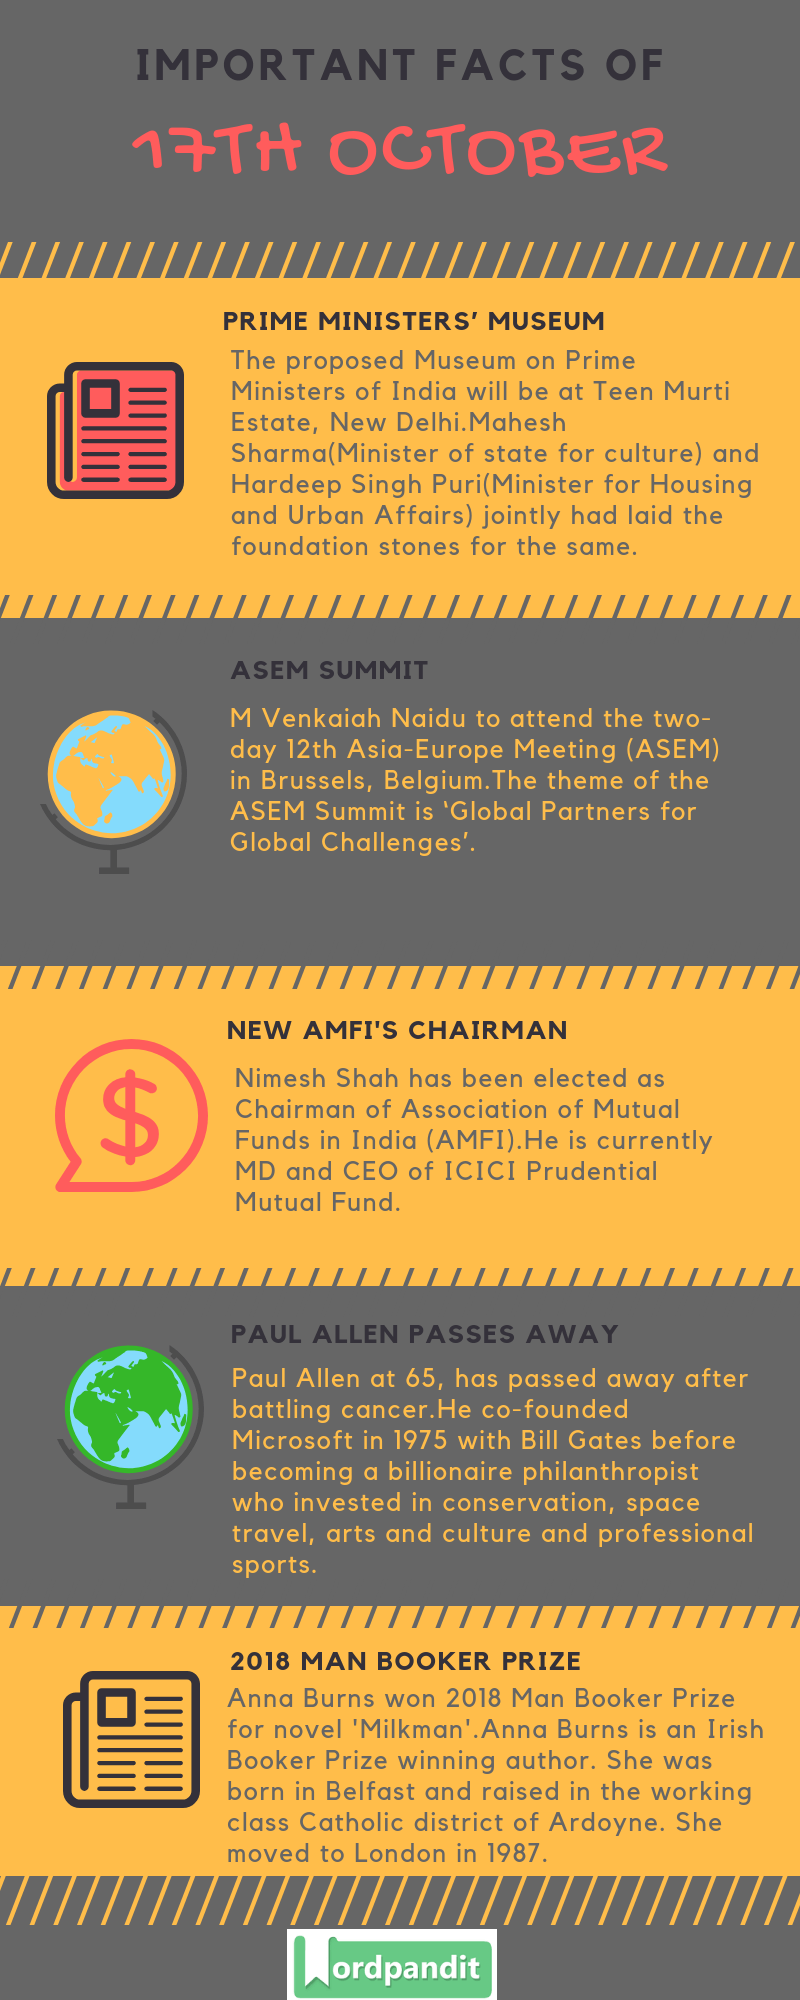 Daily Current Affairs 17 October 2018 Current Affairs Quiz 17 October 2018 Current Affairs Infographic